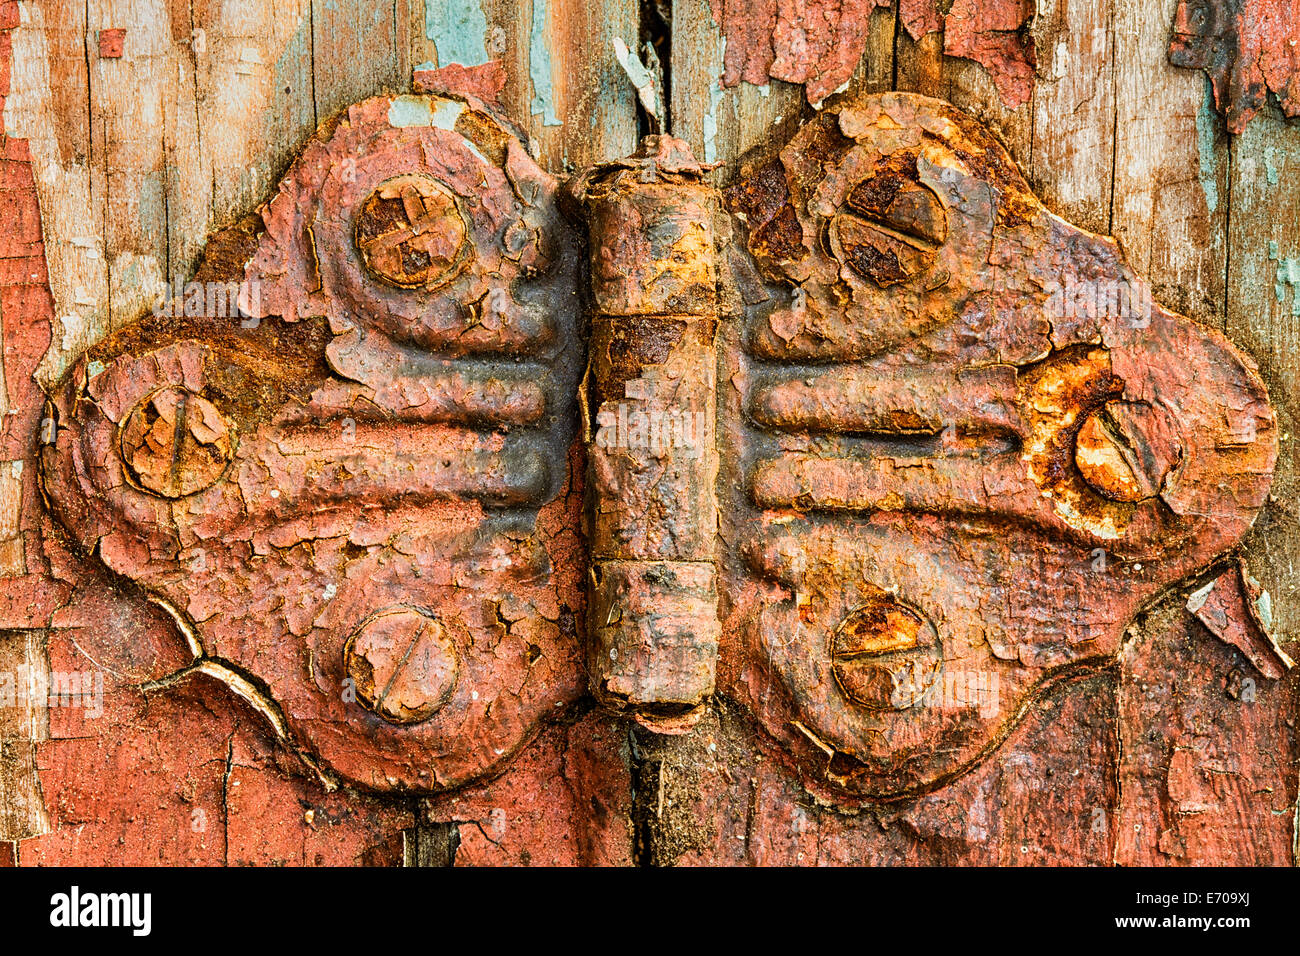 A rustic hinge found on a window in a shed. - Stock Image